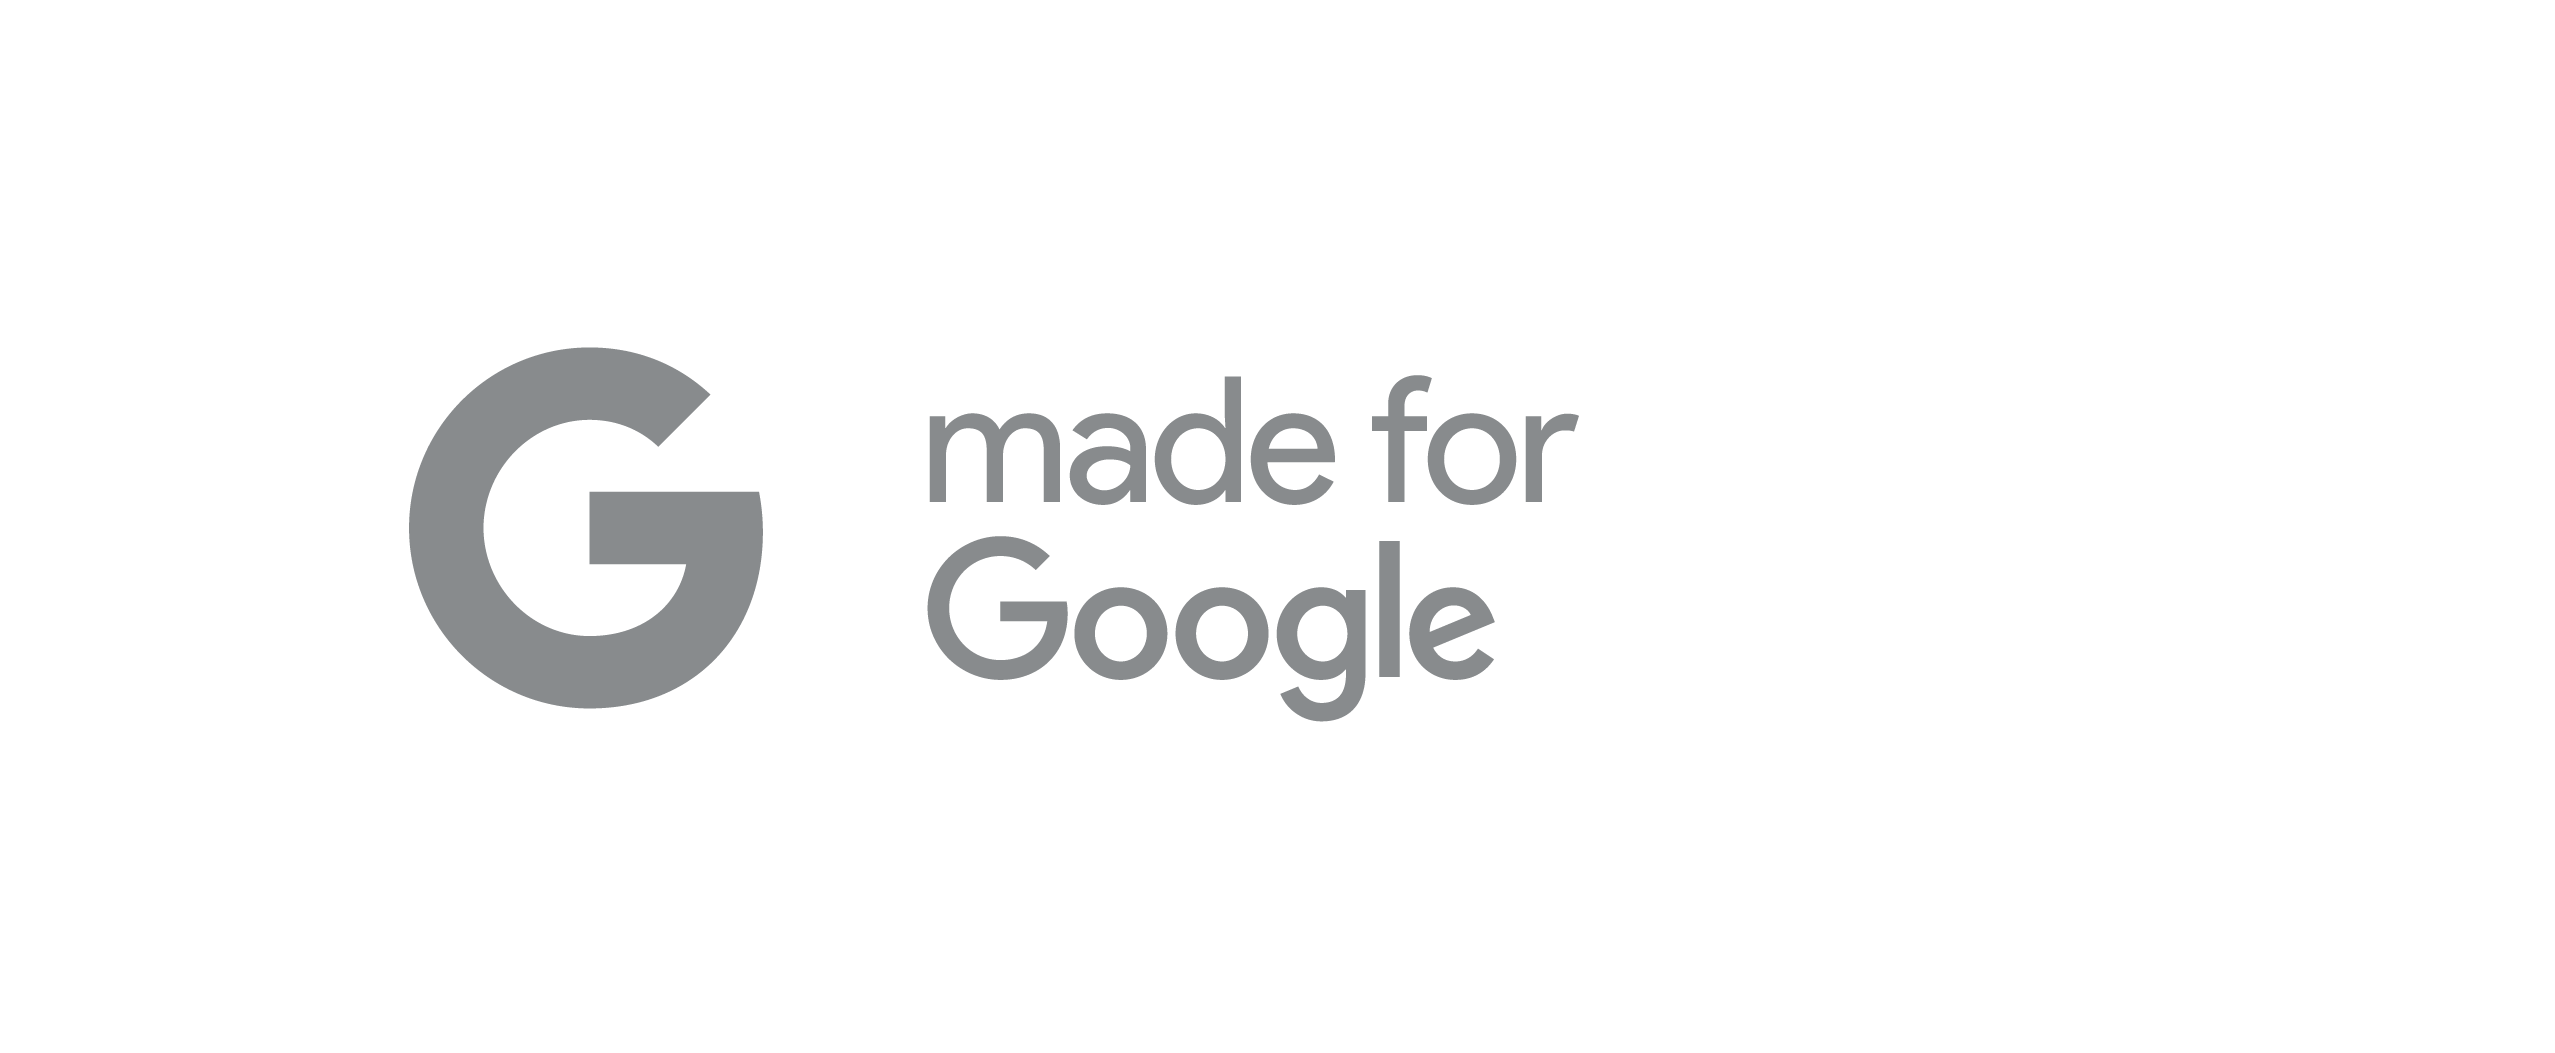 Made for Google